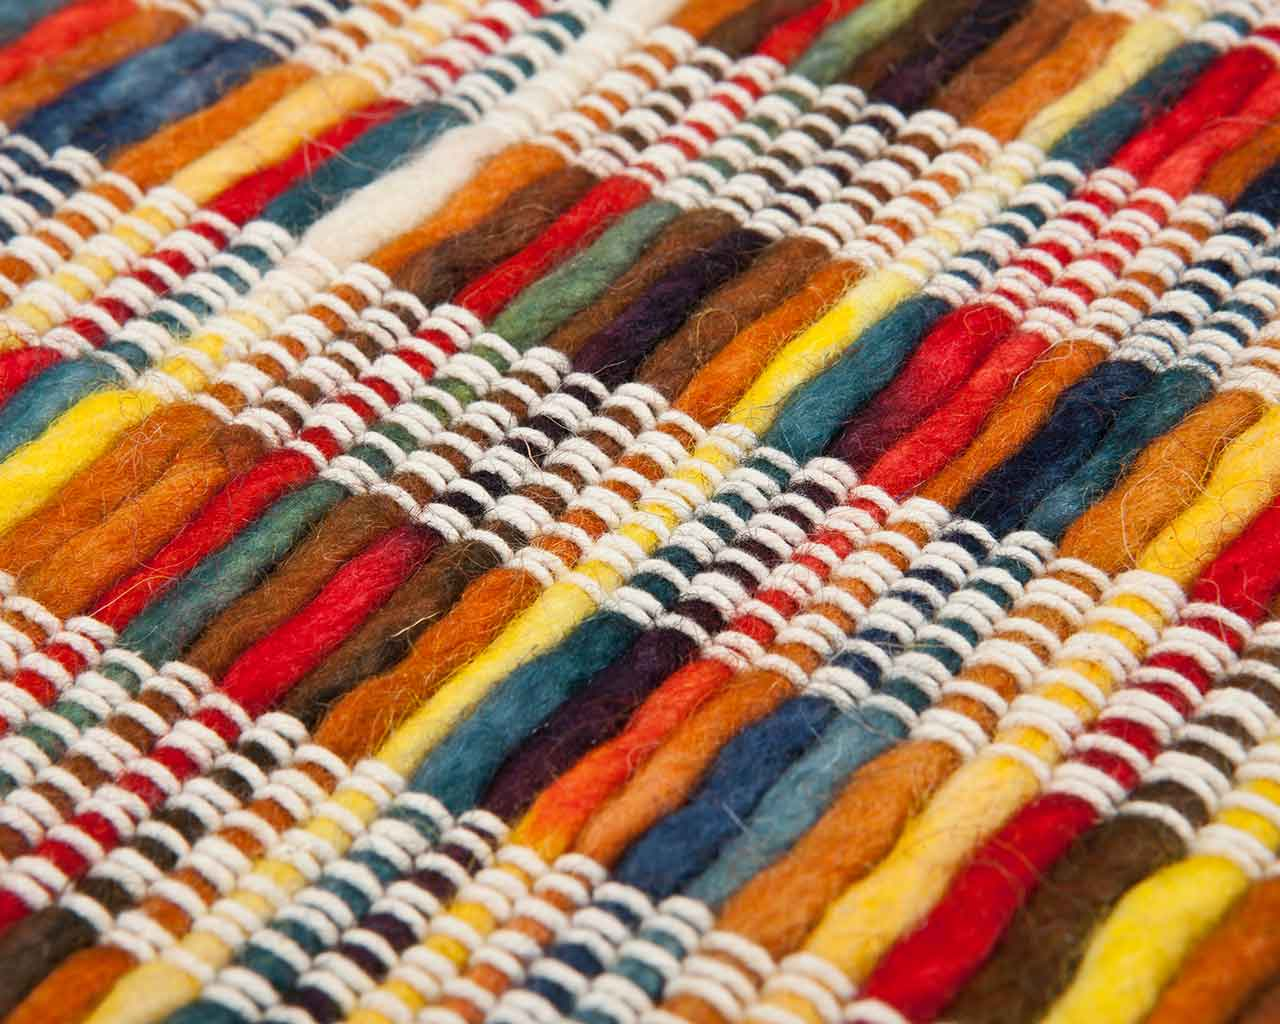 handwoven carpet close up material durable clean rainbow style unique sukhi white wool vibrant 1